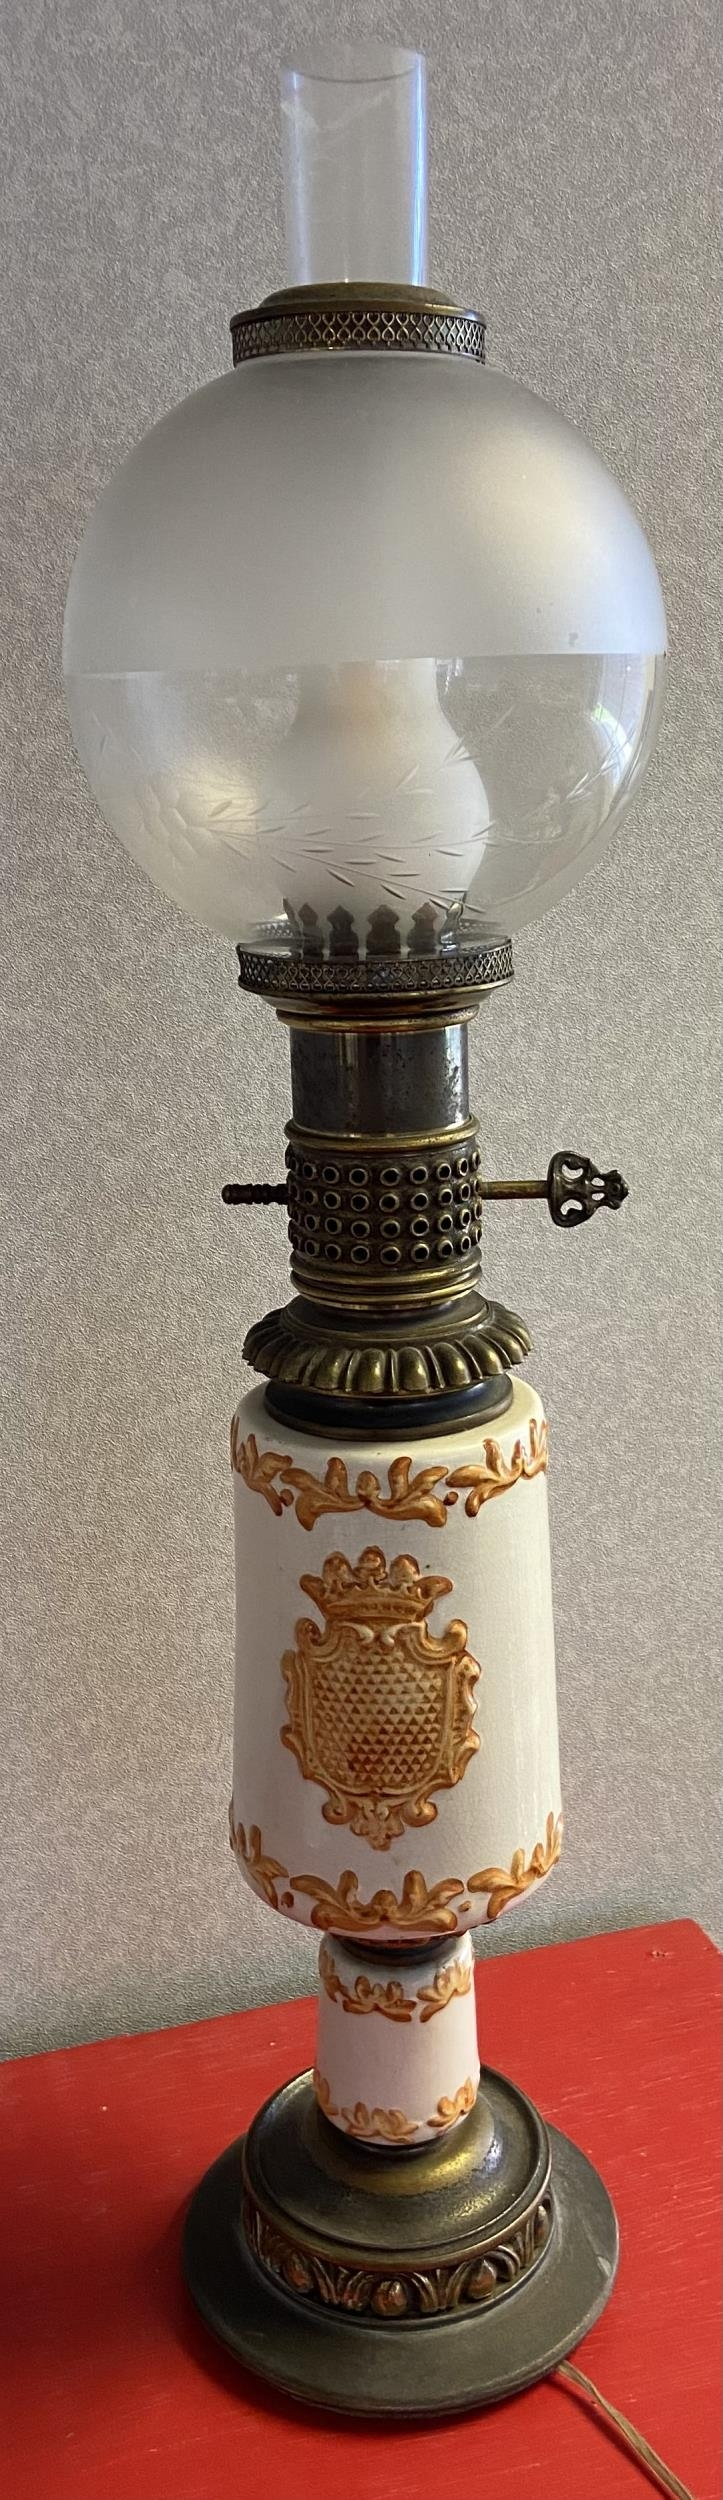 An Antique porcelain, metal and glass shade paraffin lamp converted to electric. [72cm in height]